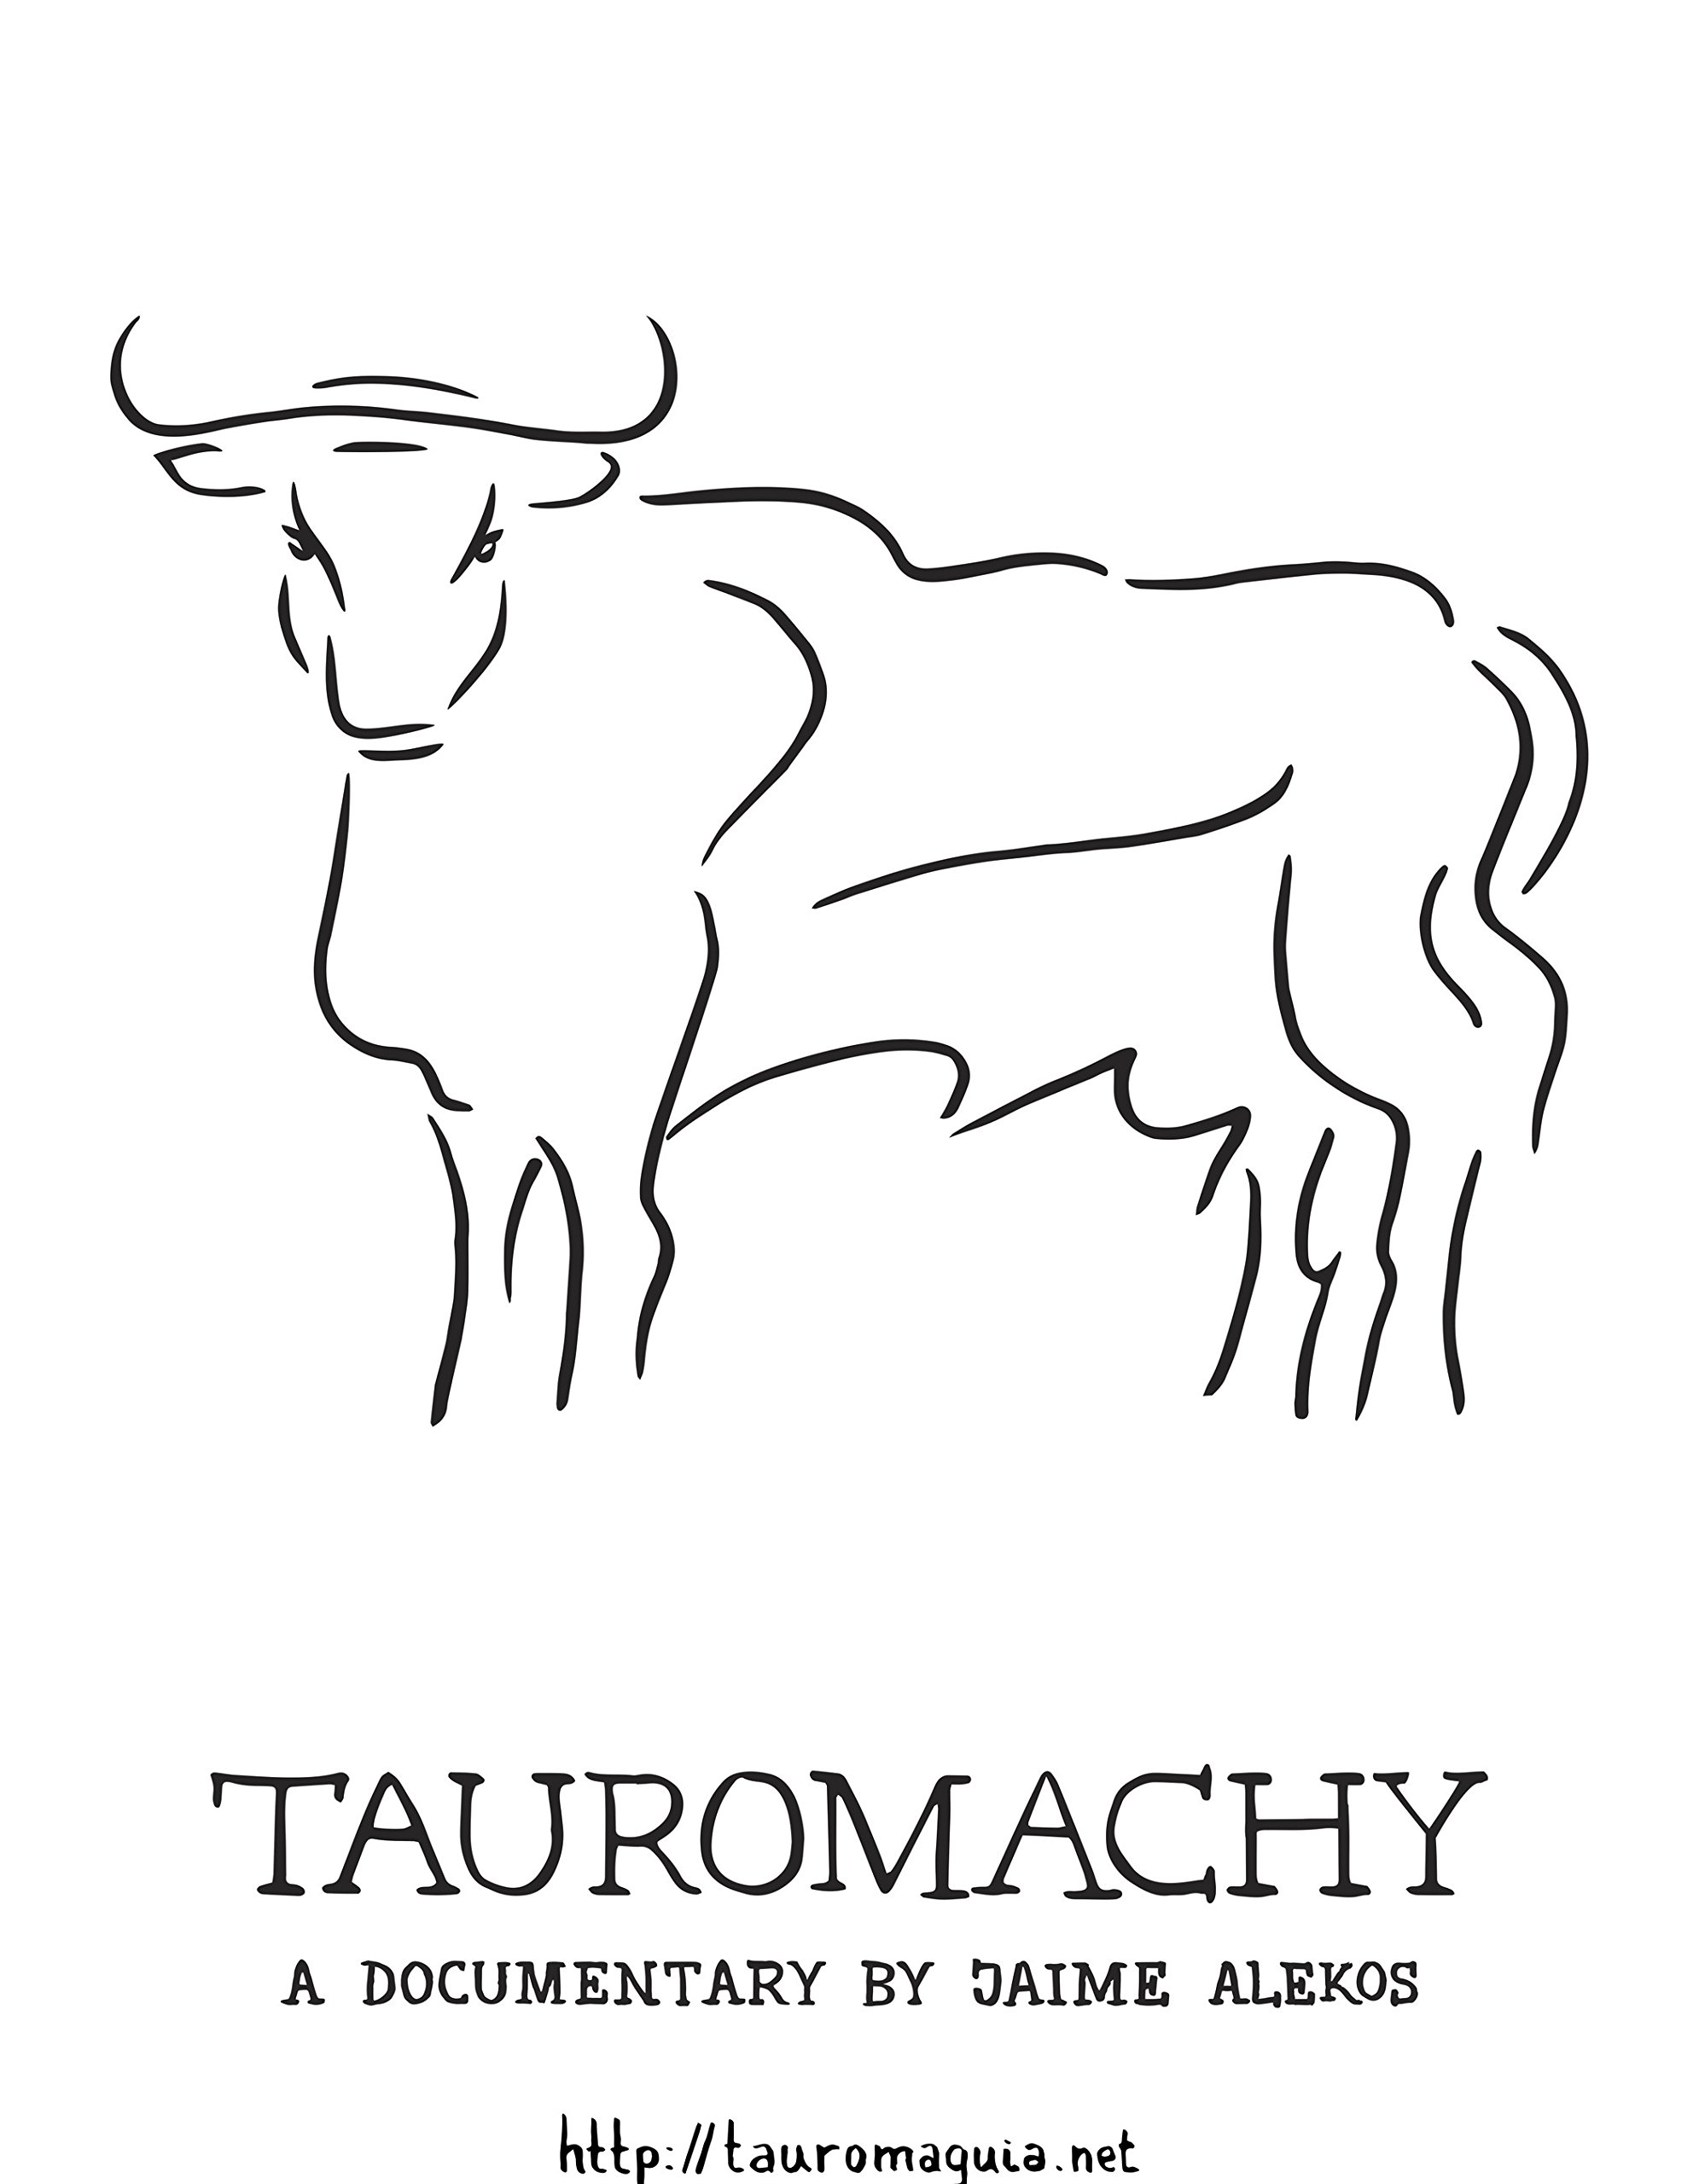 Tauromachy